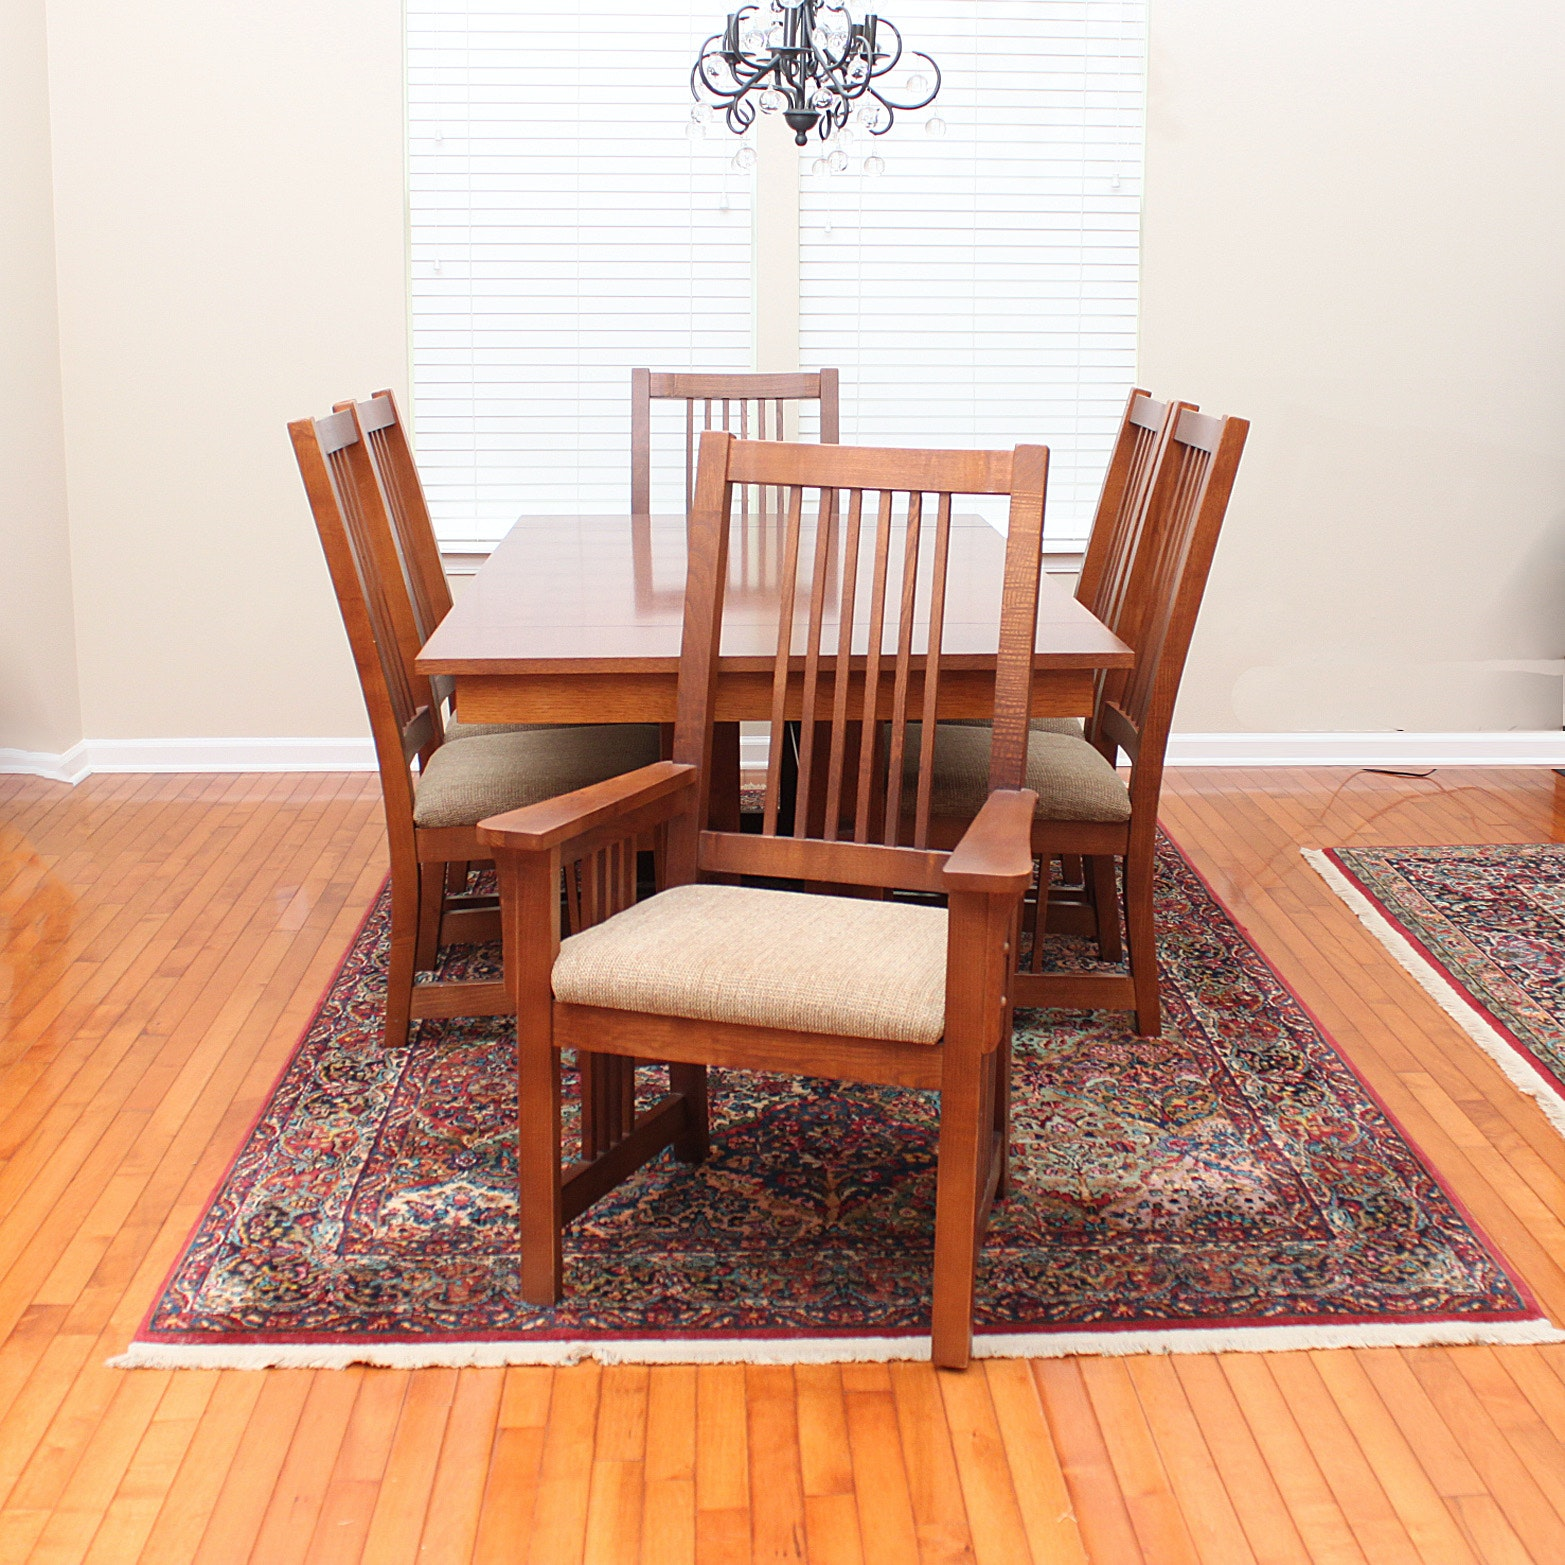 Bassett Furniture Mission Style Oak Dining Table And Chairs ...